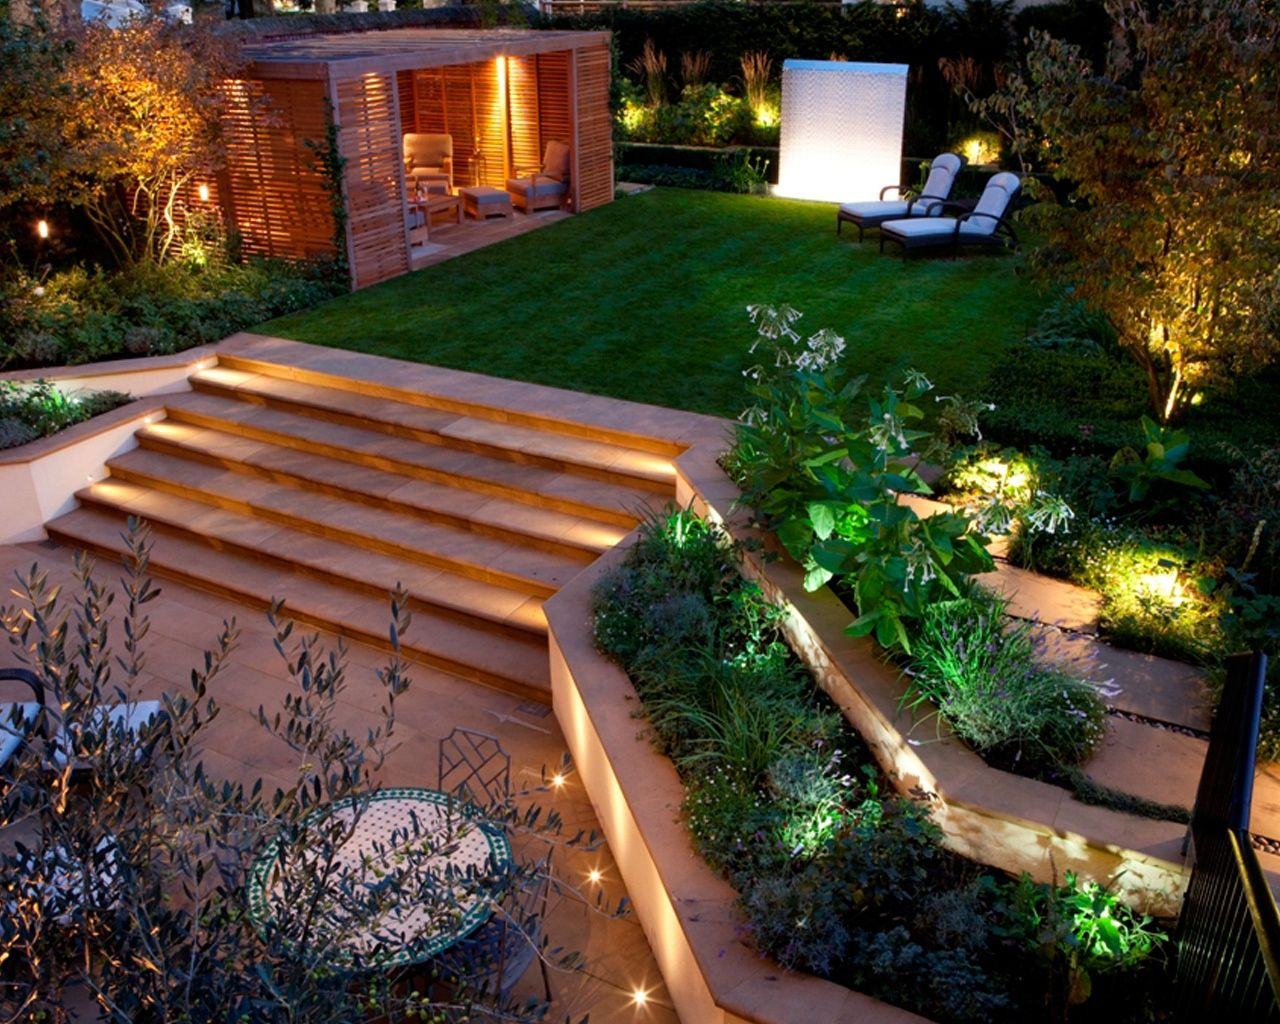 Gardens Design Ideas shade garden ideas image library shade garden design ideas 50 Modern Garden Design Ideas To Try In 2017